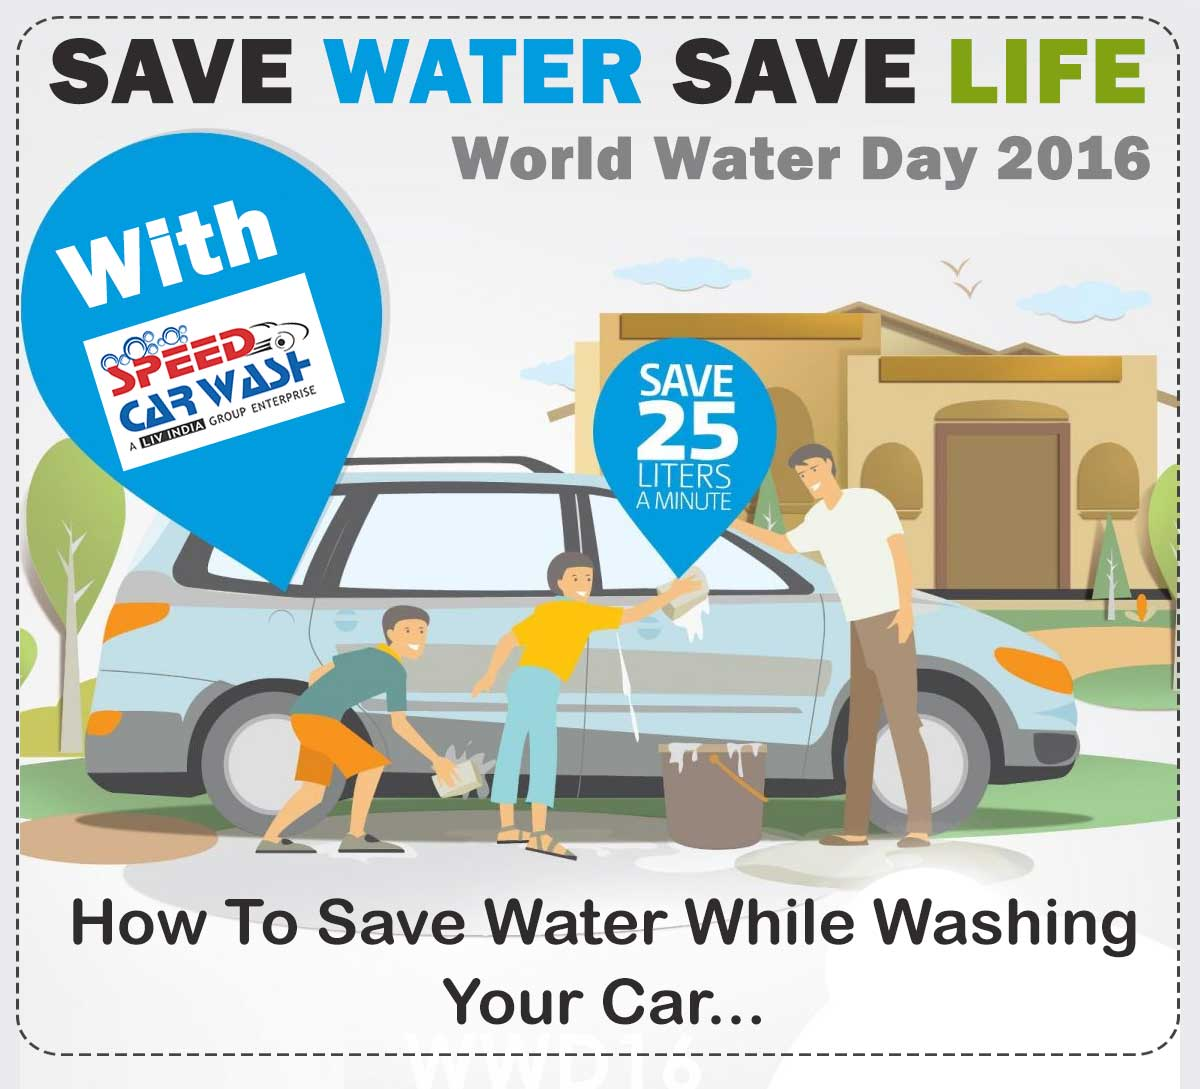 How to save water while washing your car speed car wash for How to conserve water at home